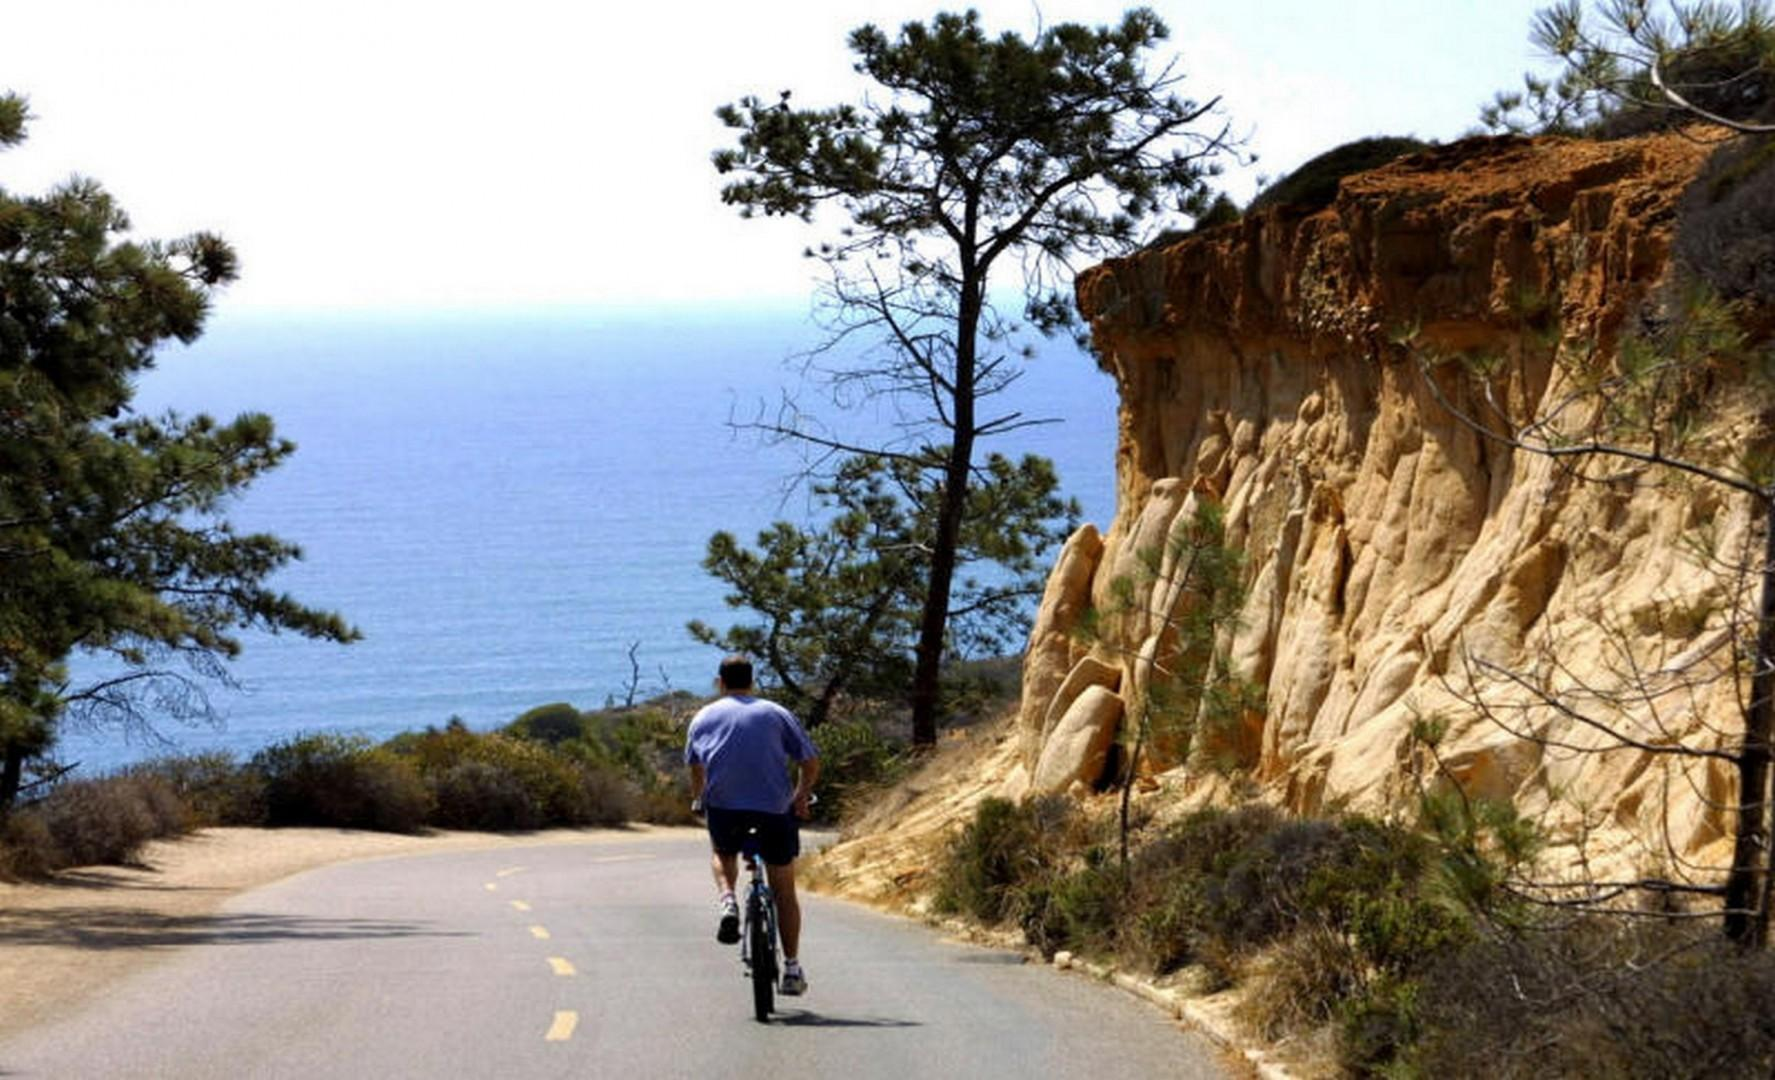 Torrey Pines State Preserve is a close drive